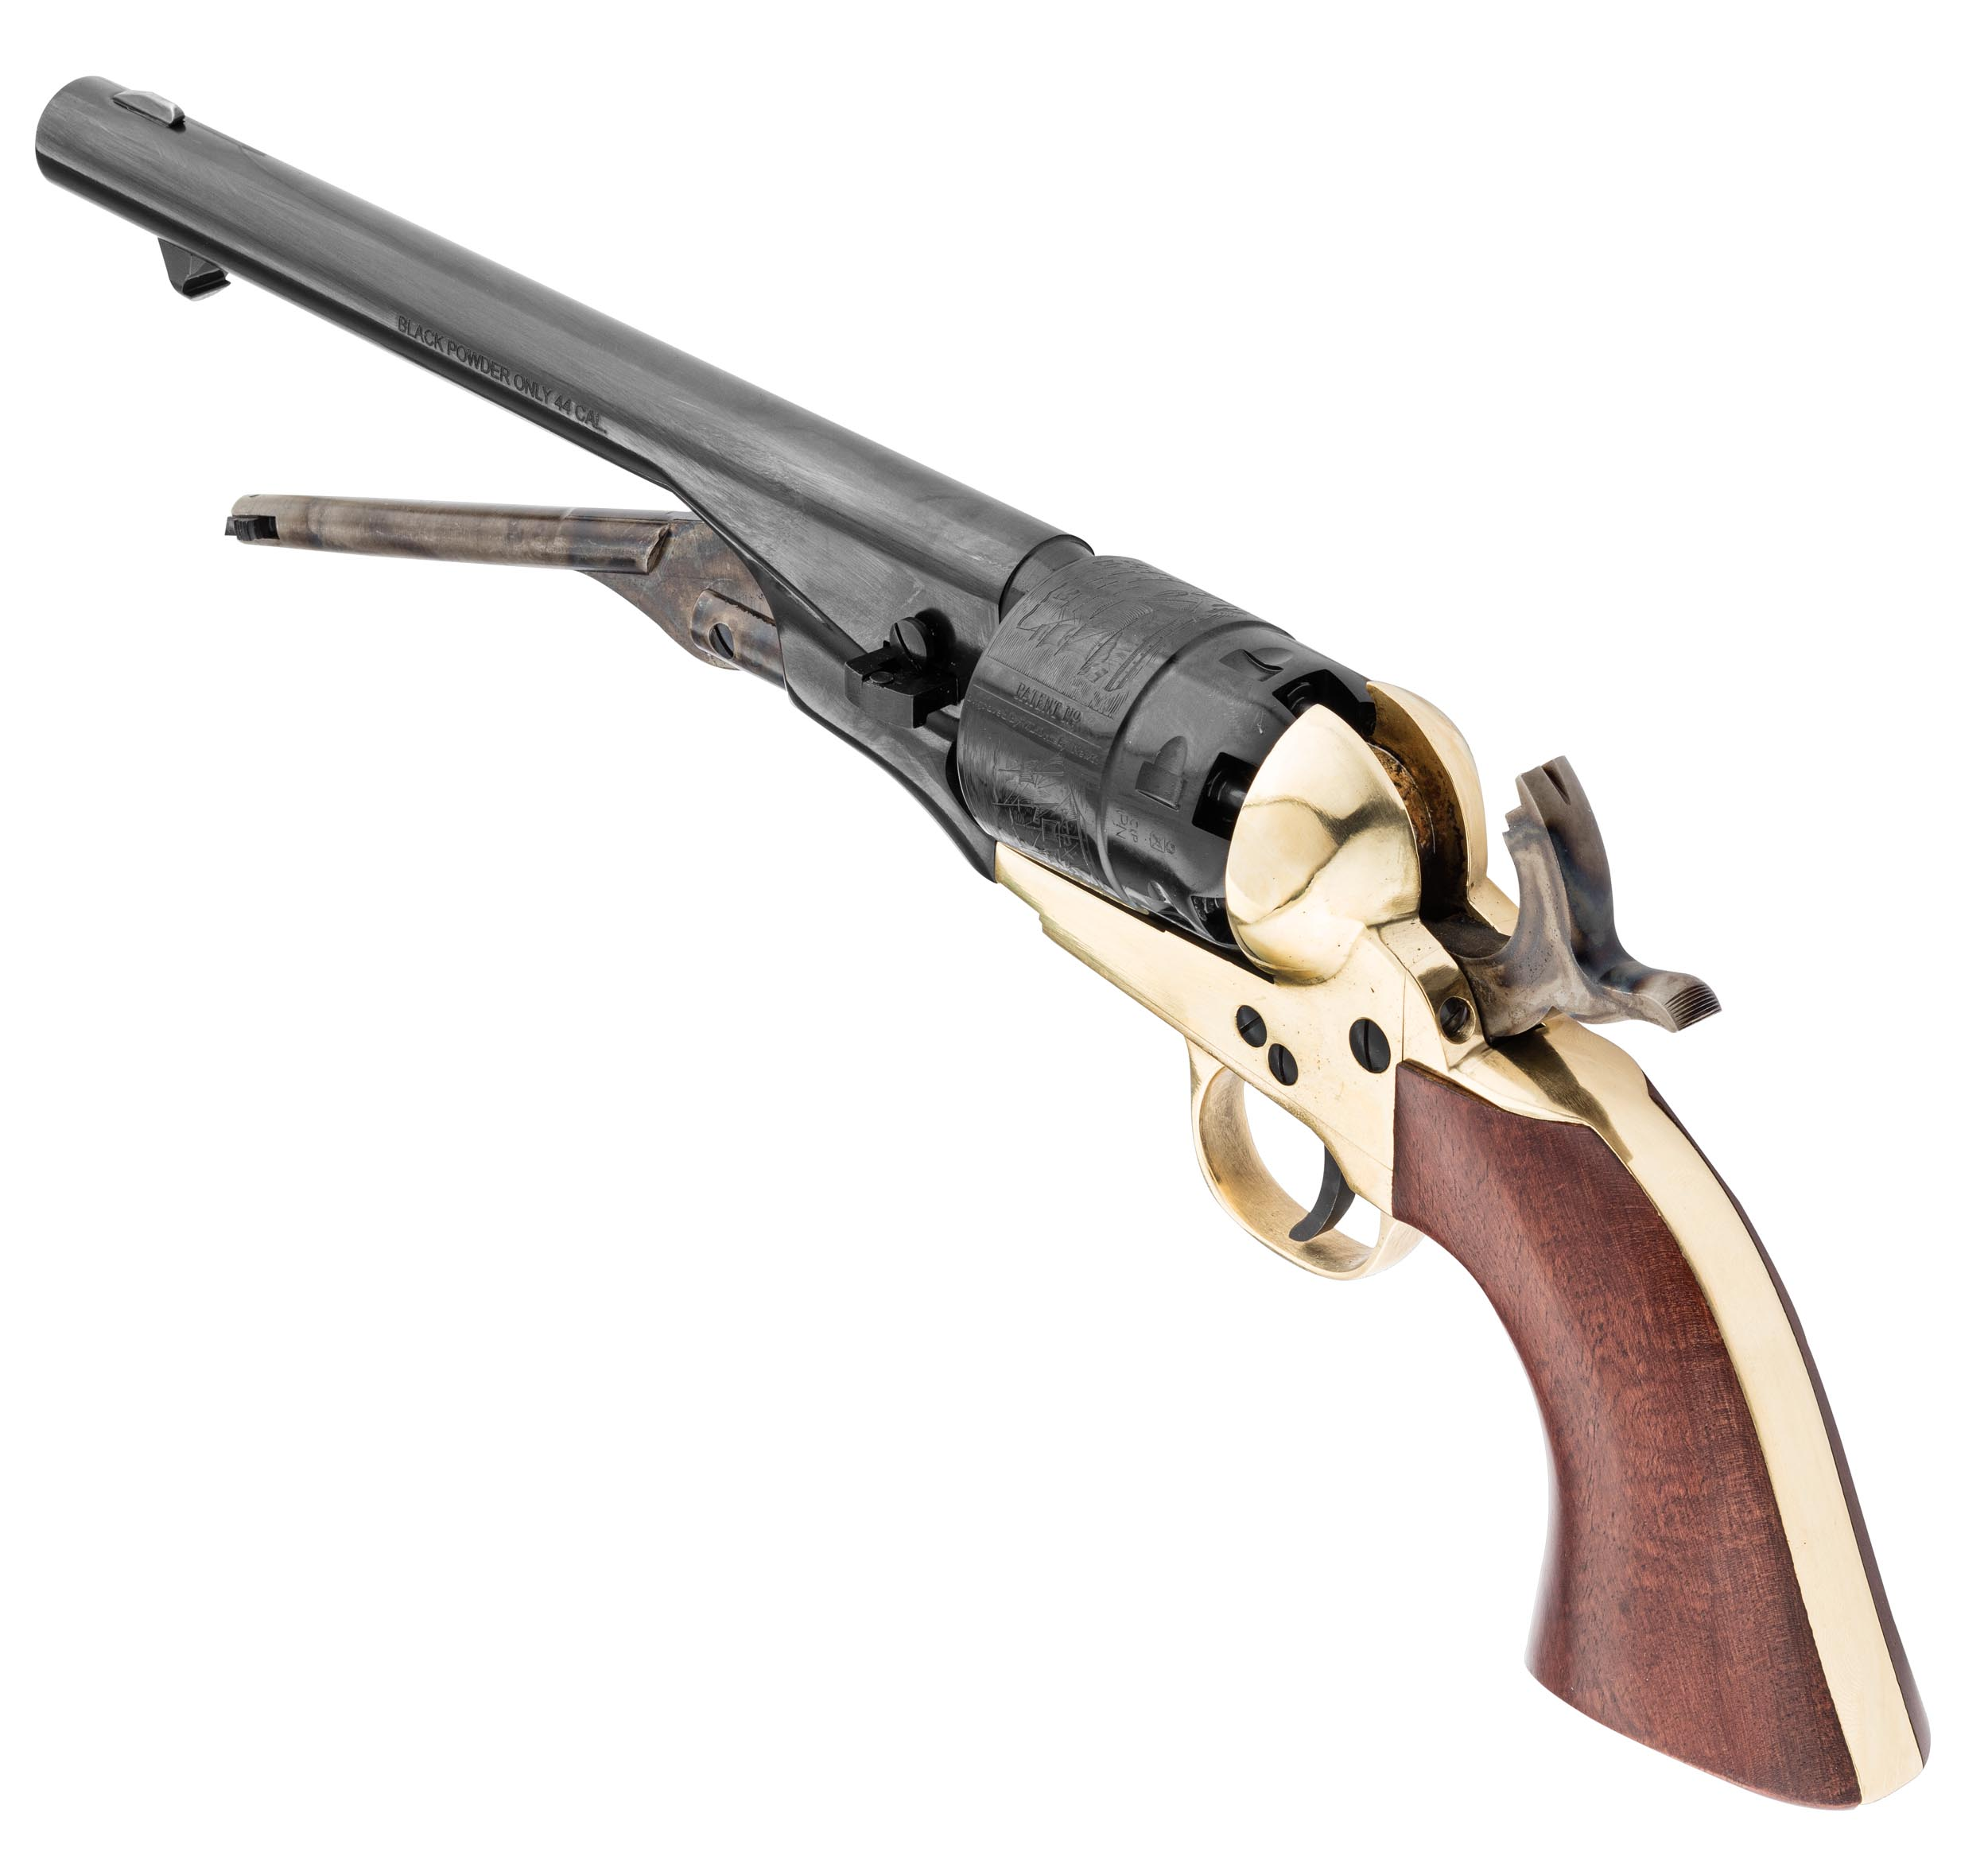 RE464-4 Colt army 1860 Pietta Army laiton - RE464